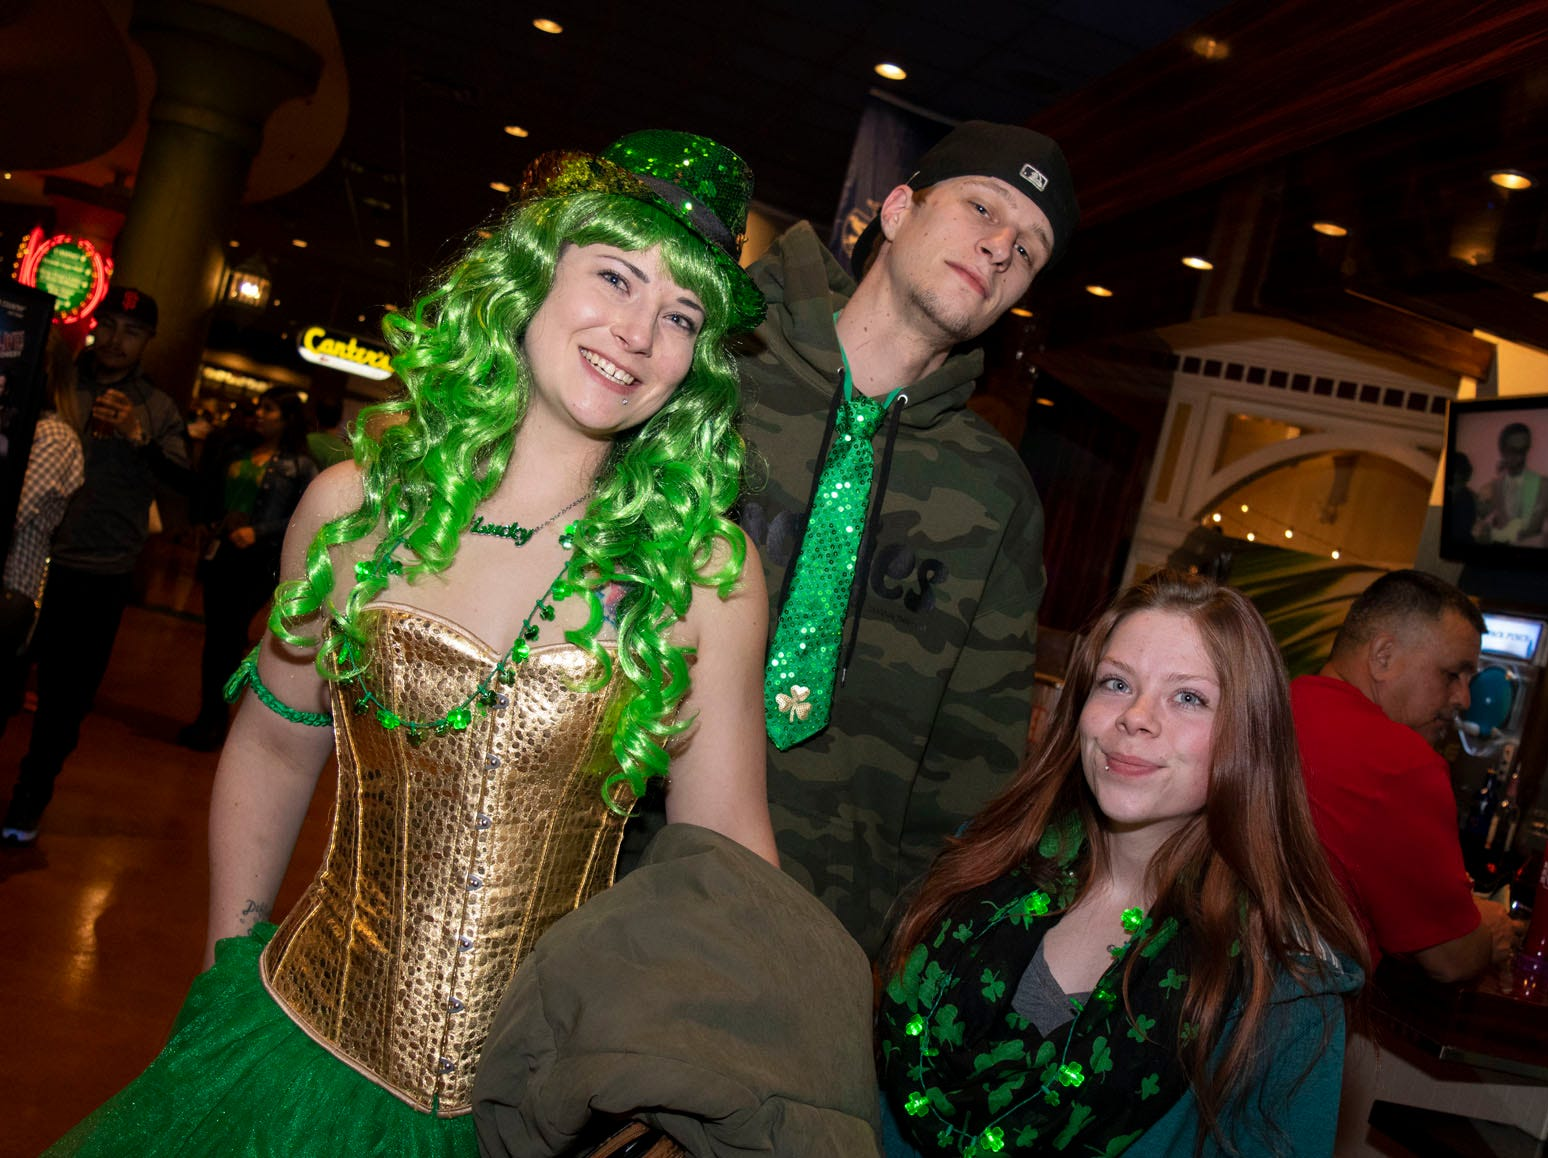 Nicole Stock, Dillon Cattonach, and Krystal Starr attend the 2019 Leprechaun Crawl on Saturday, March 16, 2019. Reno, Nev.